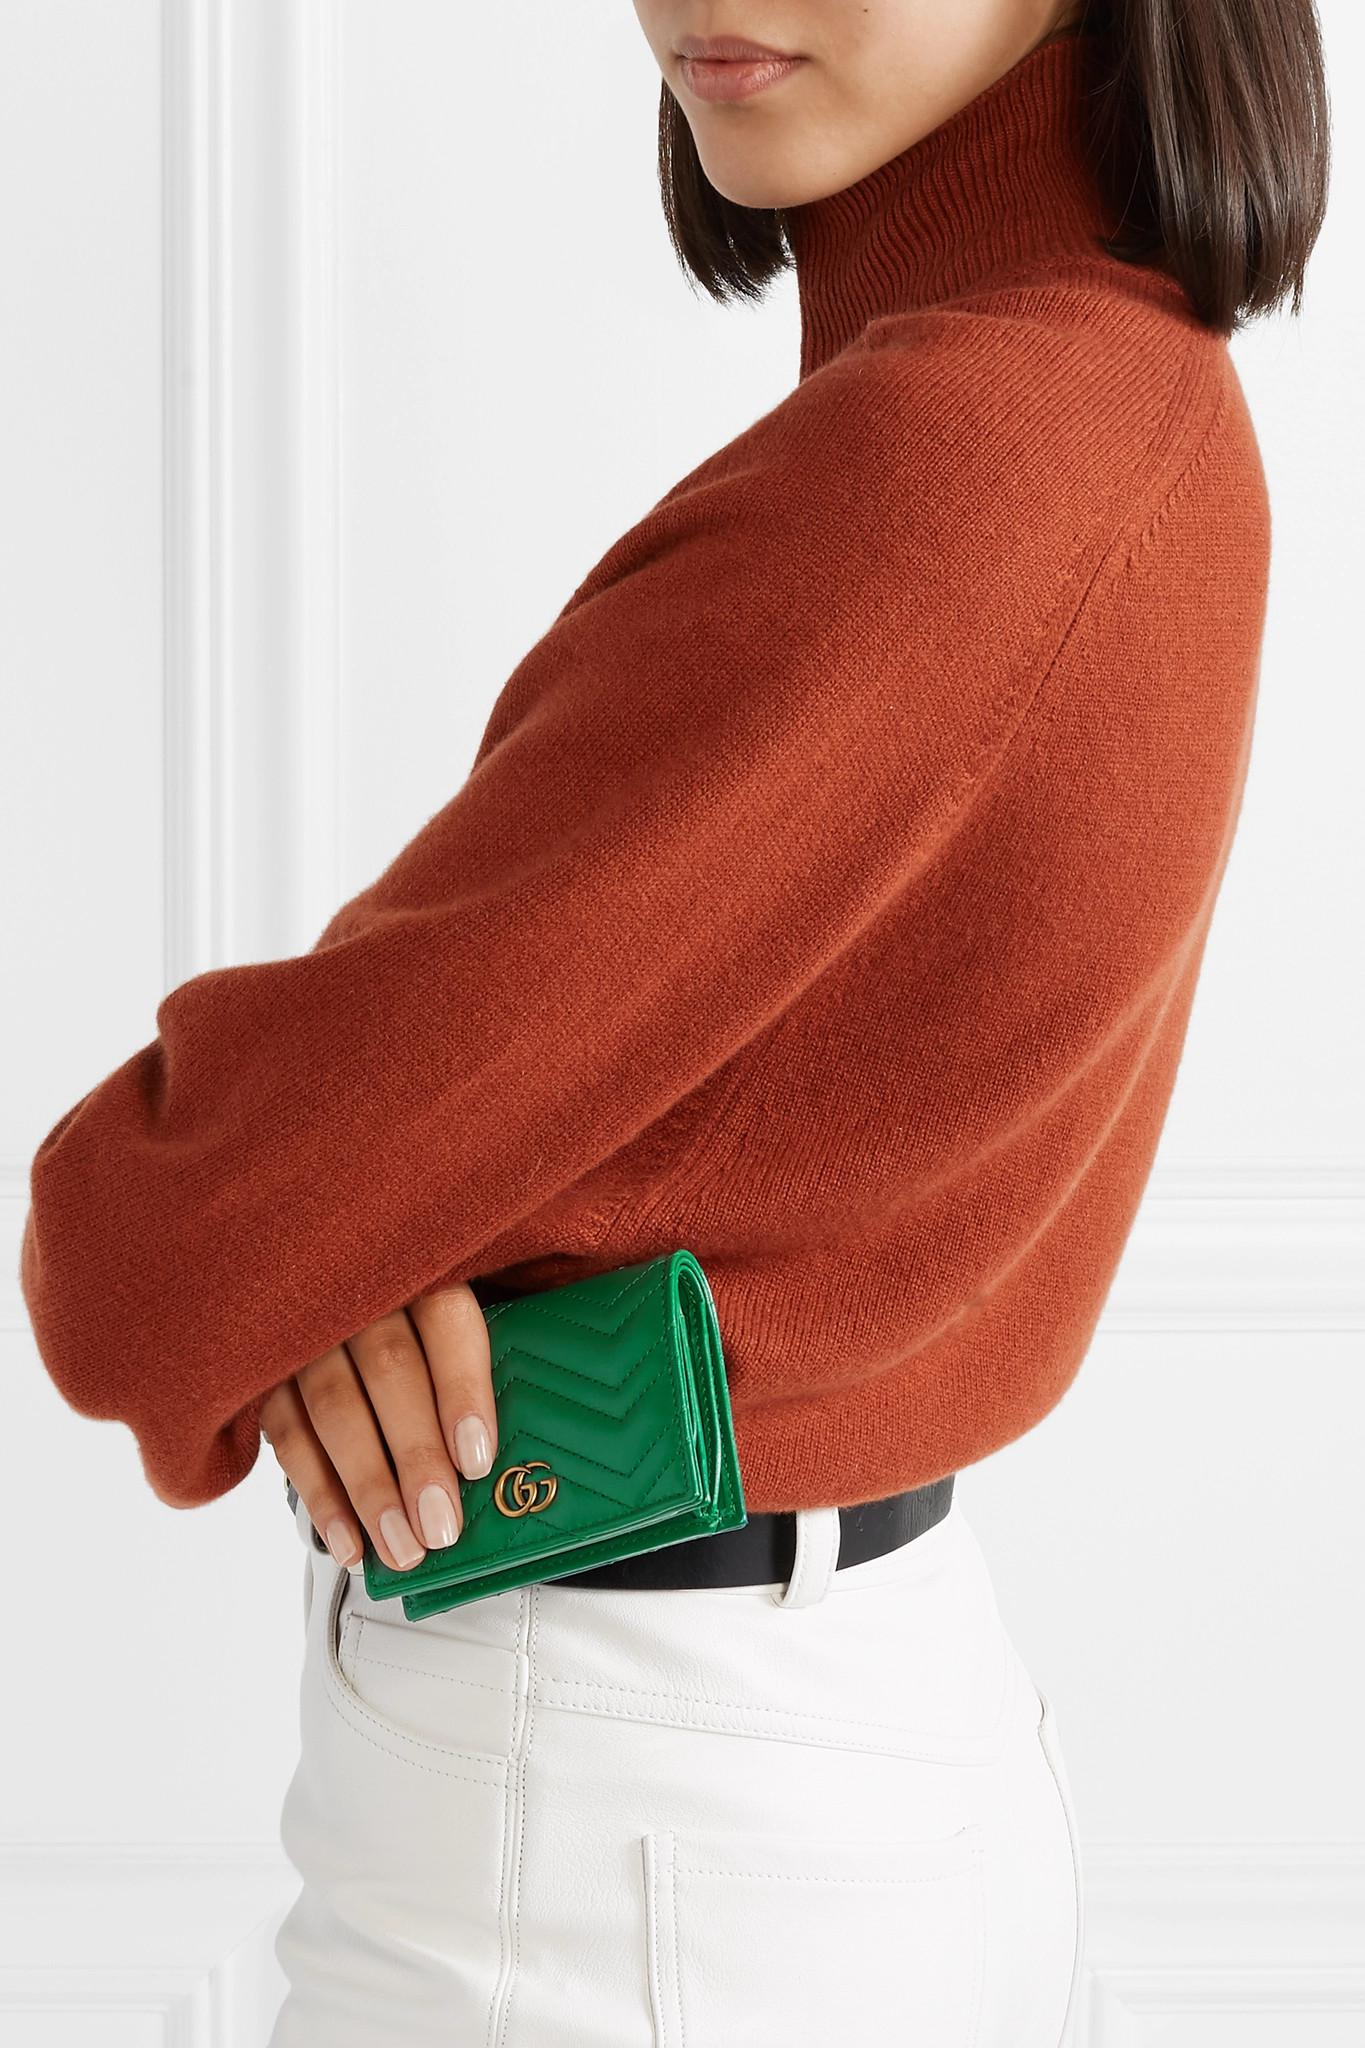 c0ad0a1022088 Gucci - Green Gg Marmont Small Quilted Leather Wallet - Lyst. View  fullscreen